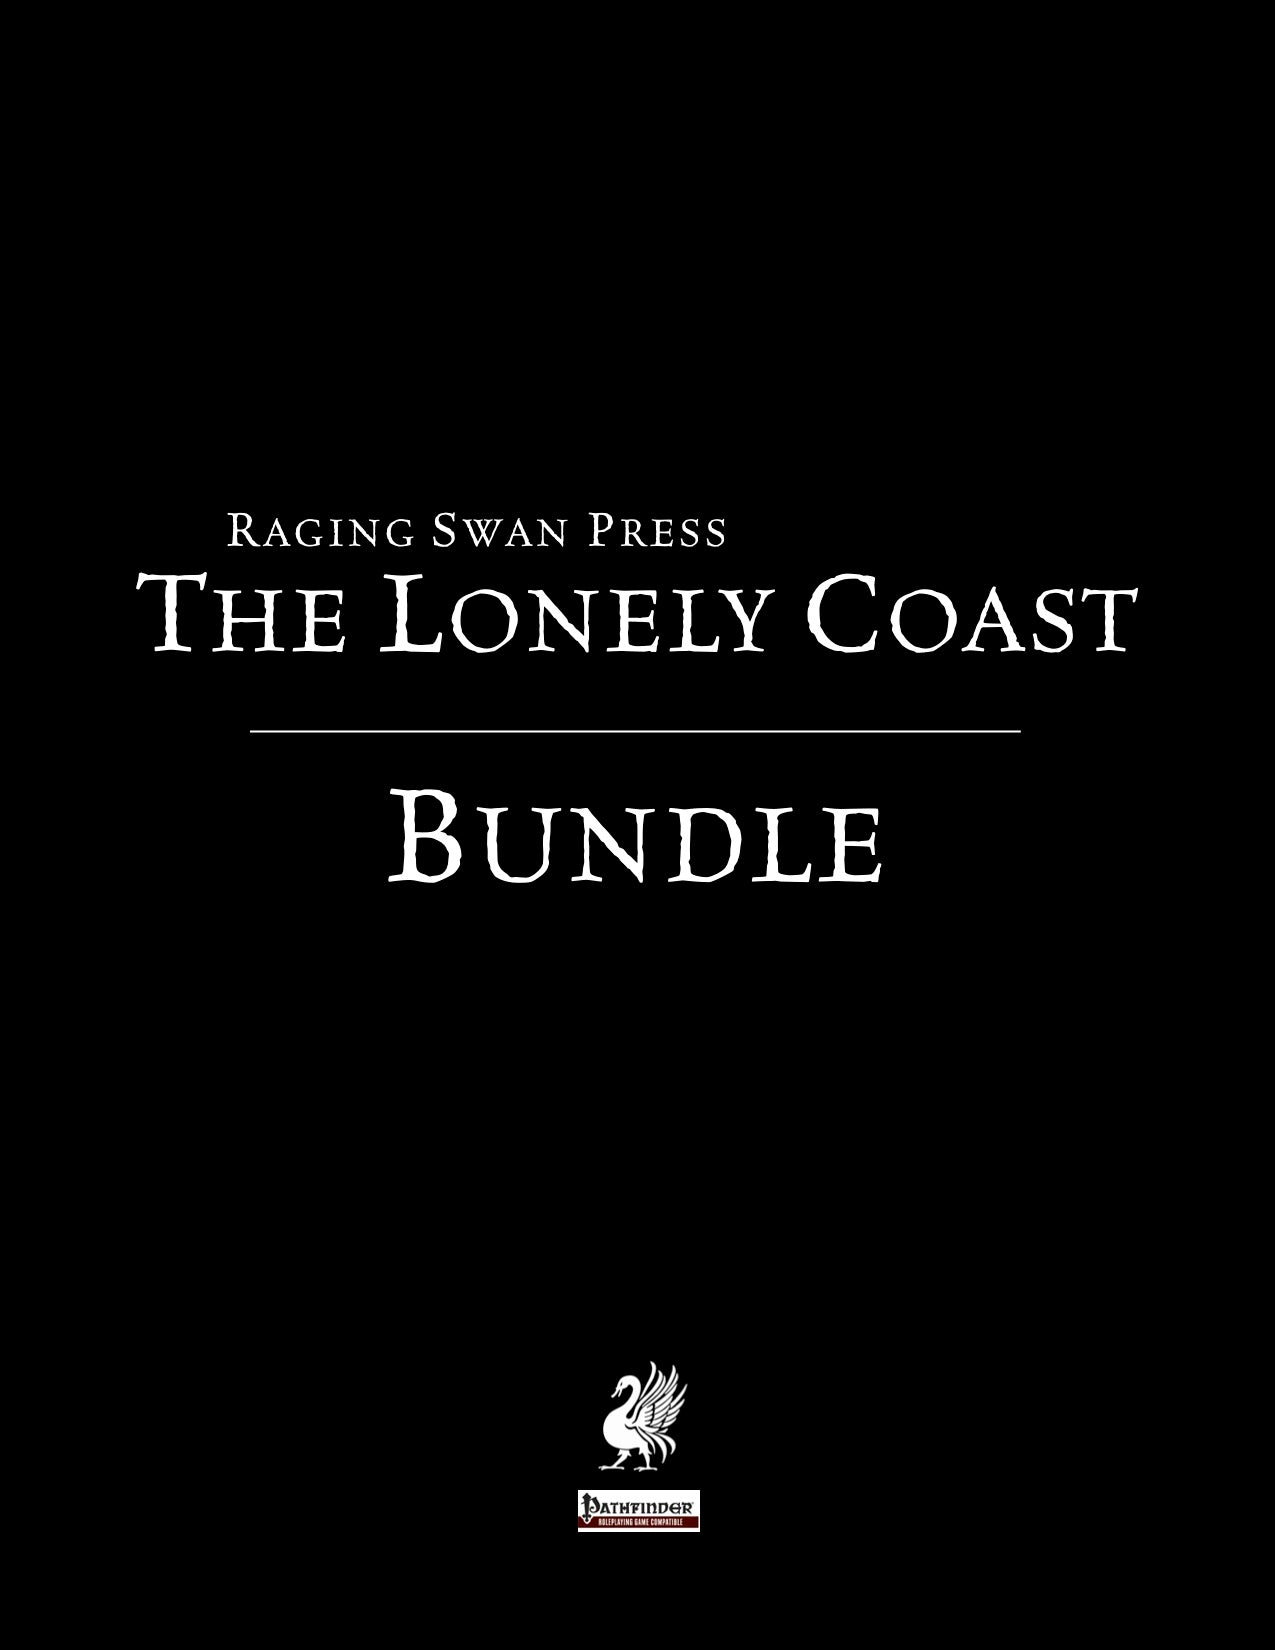 The Lonely Coast Bundle